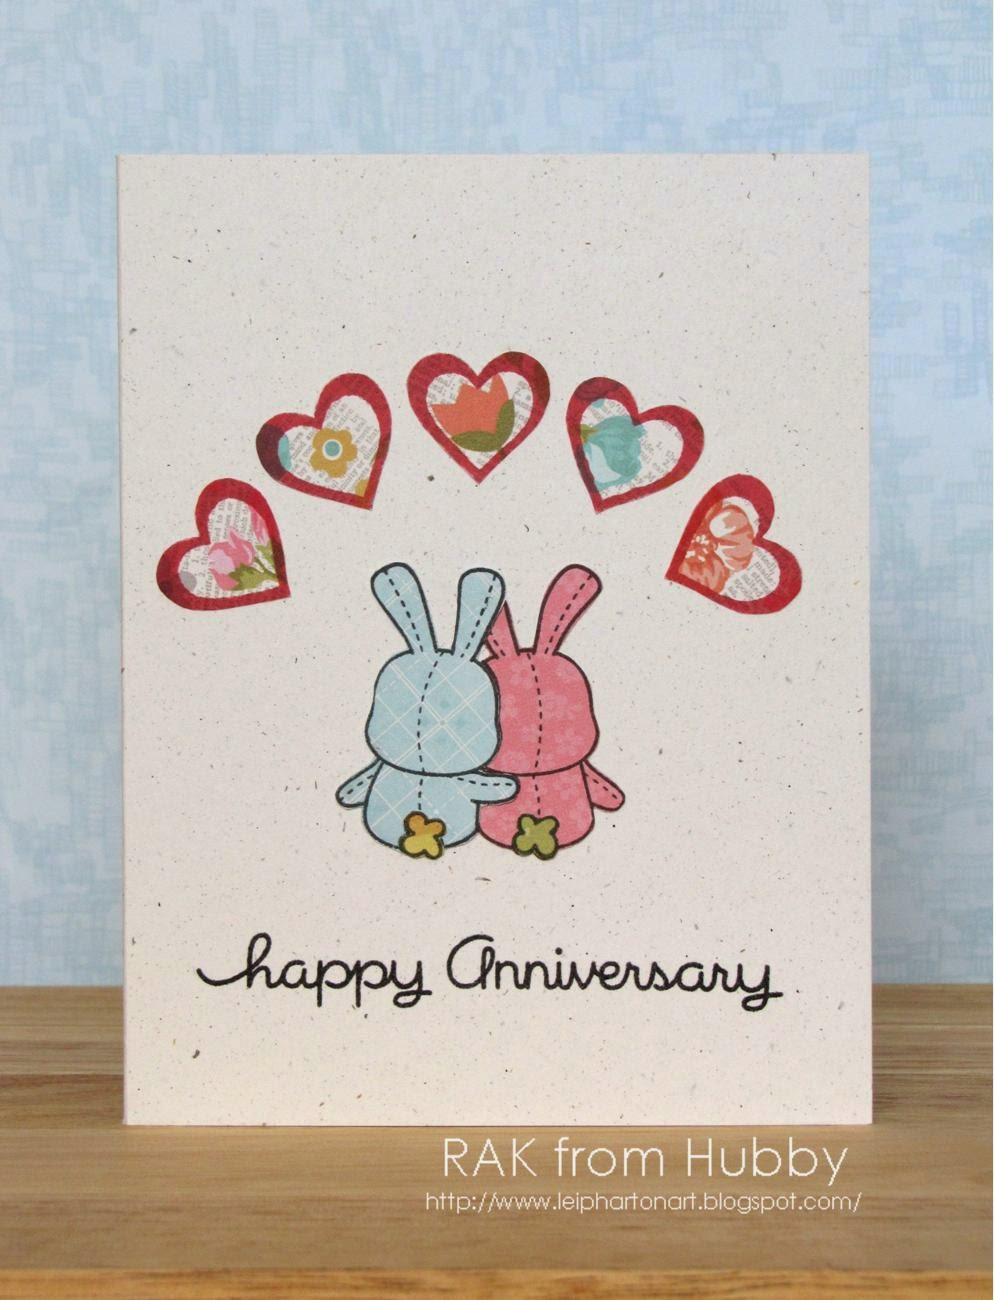 Wedding Anniversary Gift For Husband Singapore : Wedding Anniversary Cards Husband - Wonderful Husband Wedding ...